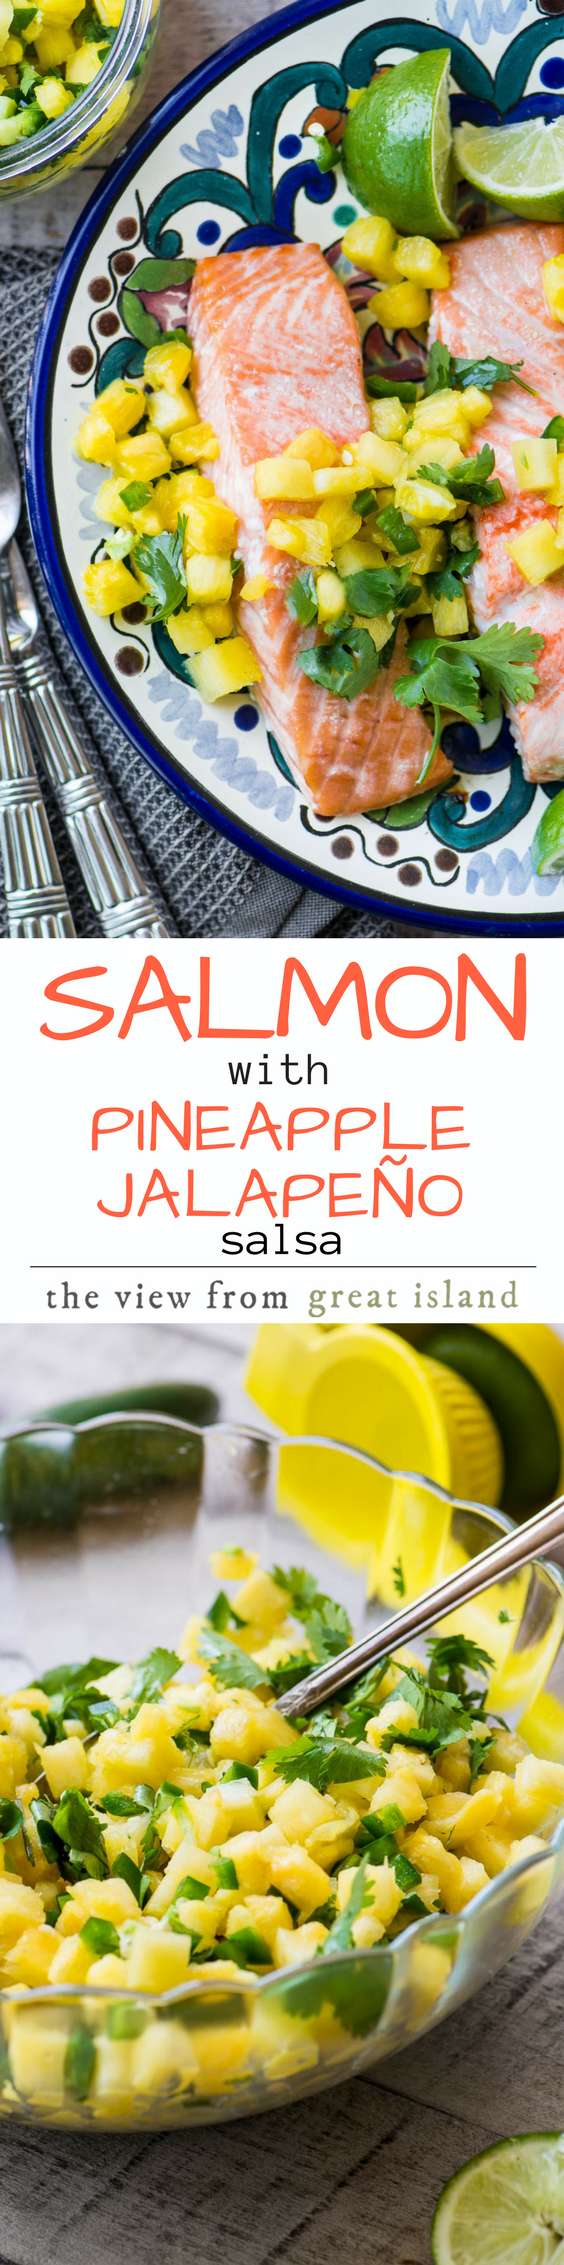 Salmon with Pineapple Jalapeno Salsa pin